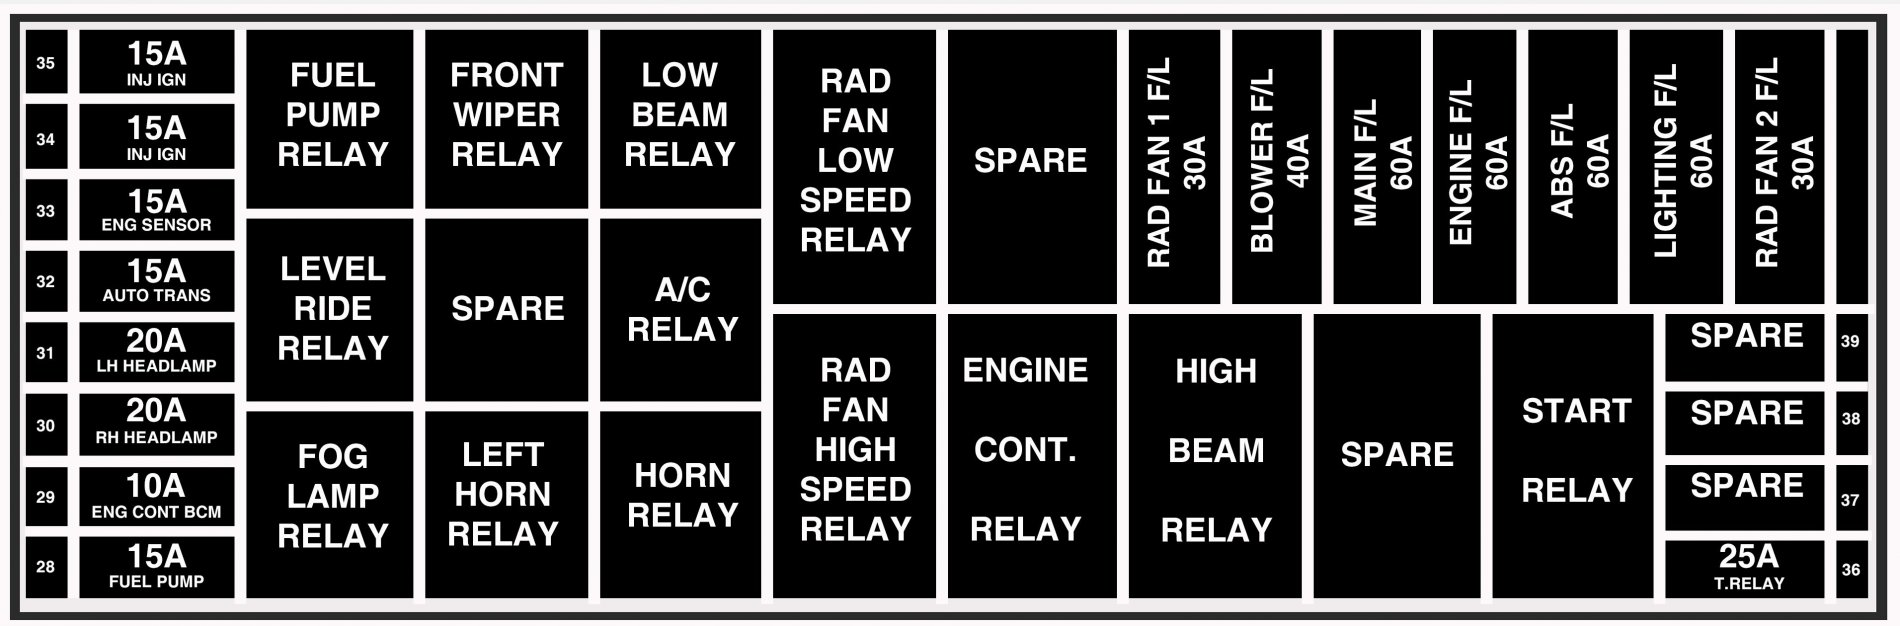 Fuse And Relay Layout Dilema